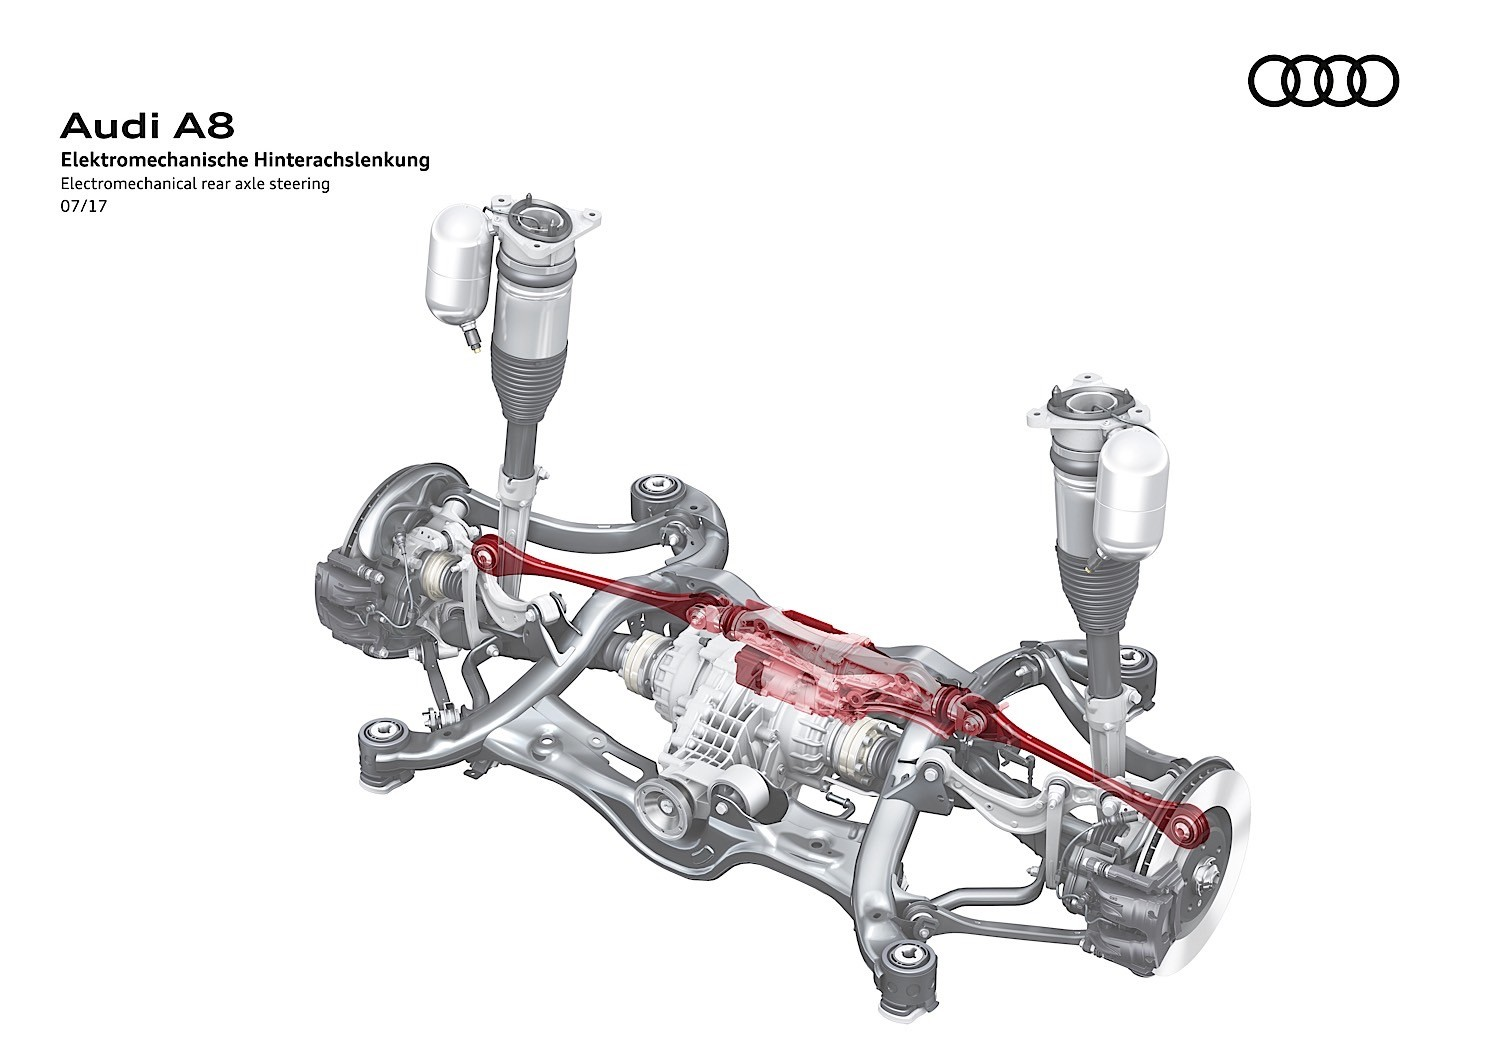 2004 Audi Tt Engine Diagram